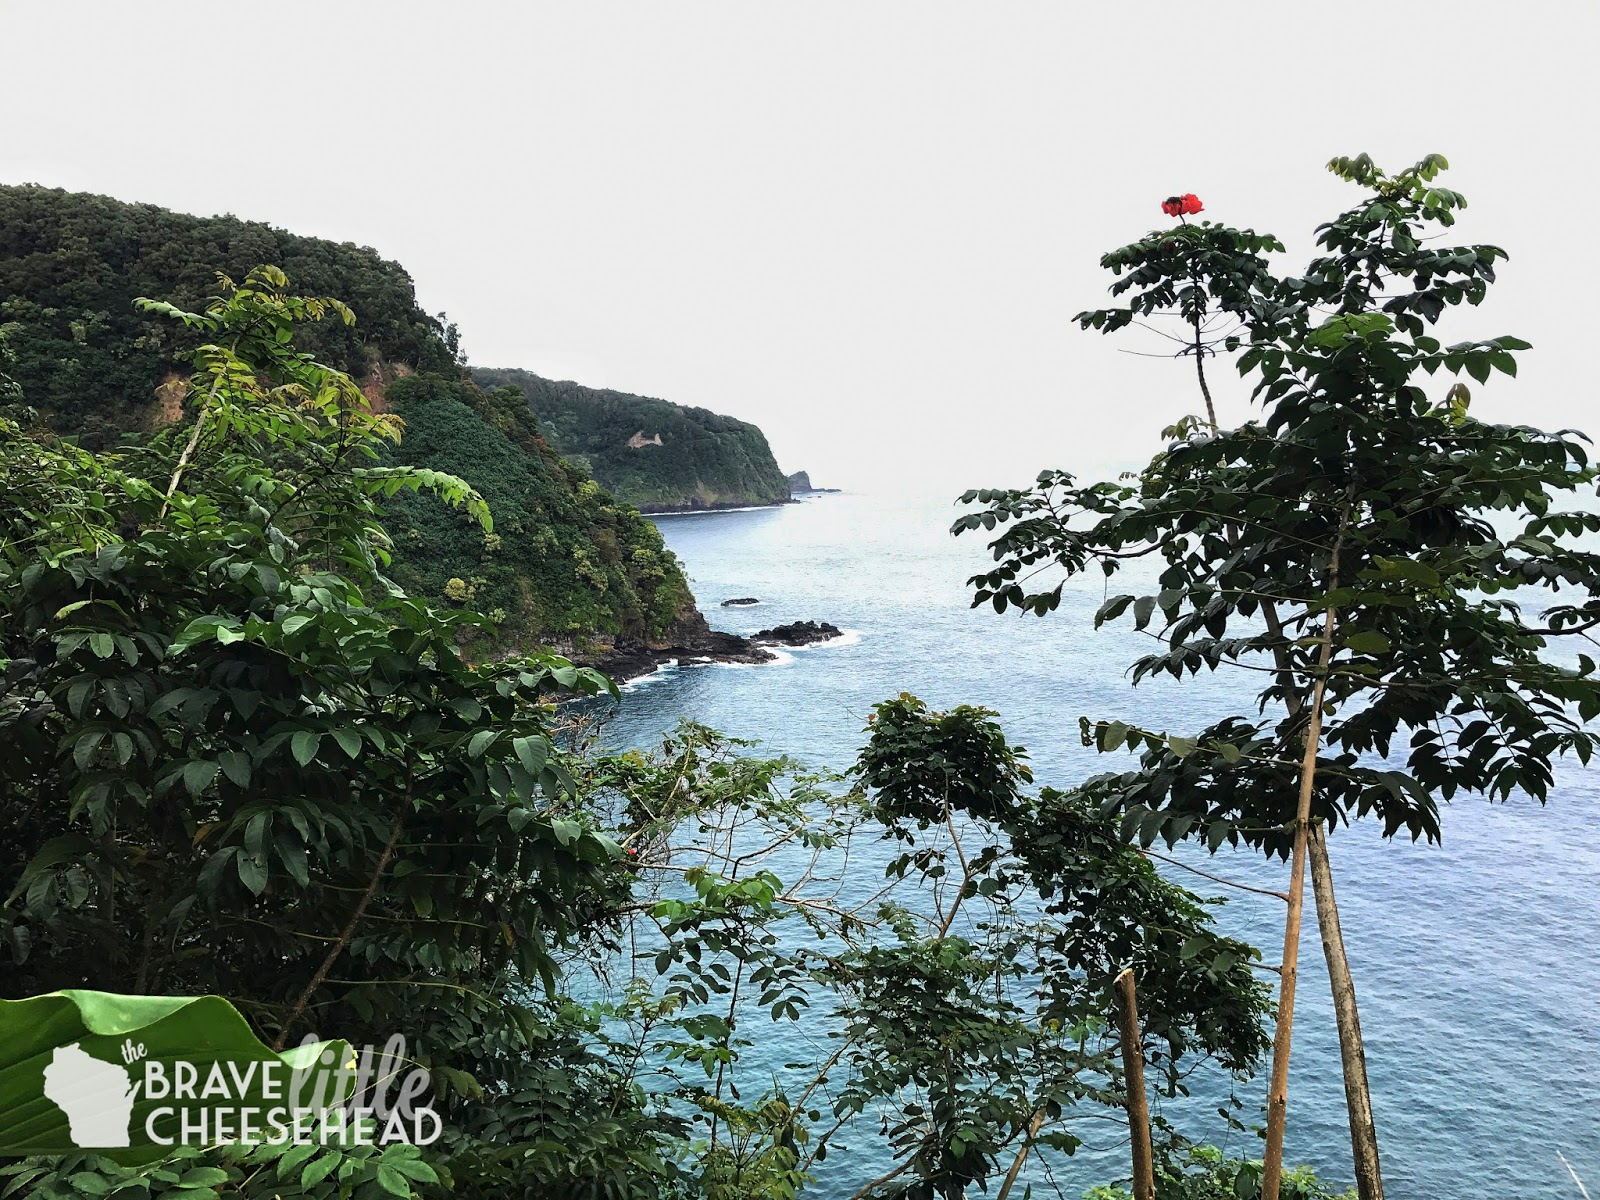 Where to Stop Along Maui's Road to Hana | The Brave Little Cheesehead at bravelittlecheesehead.com